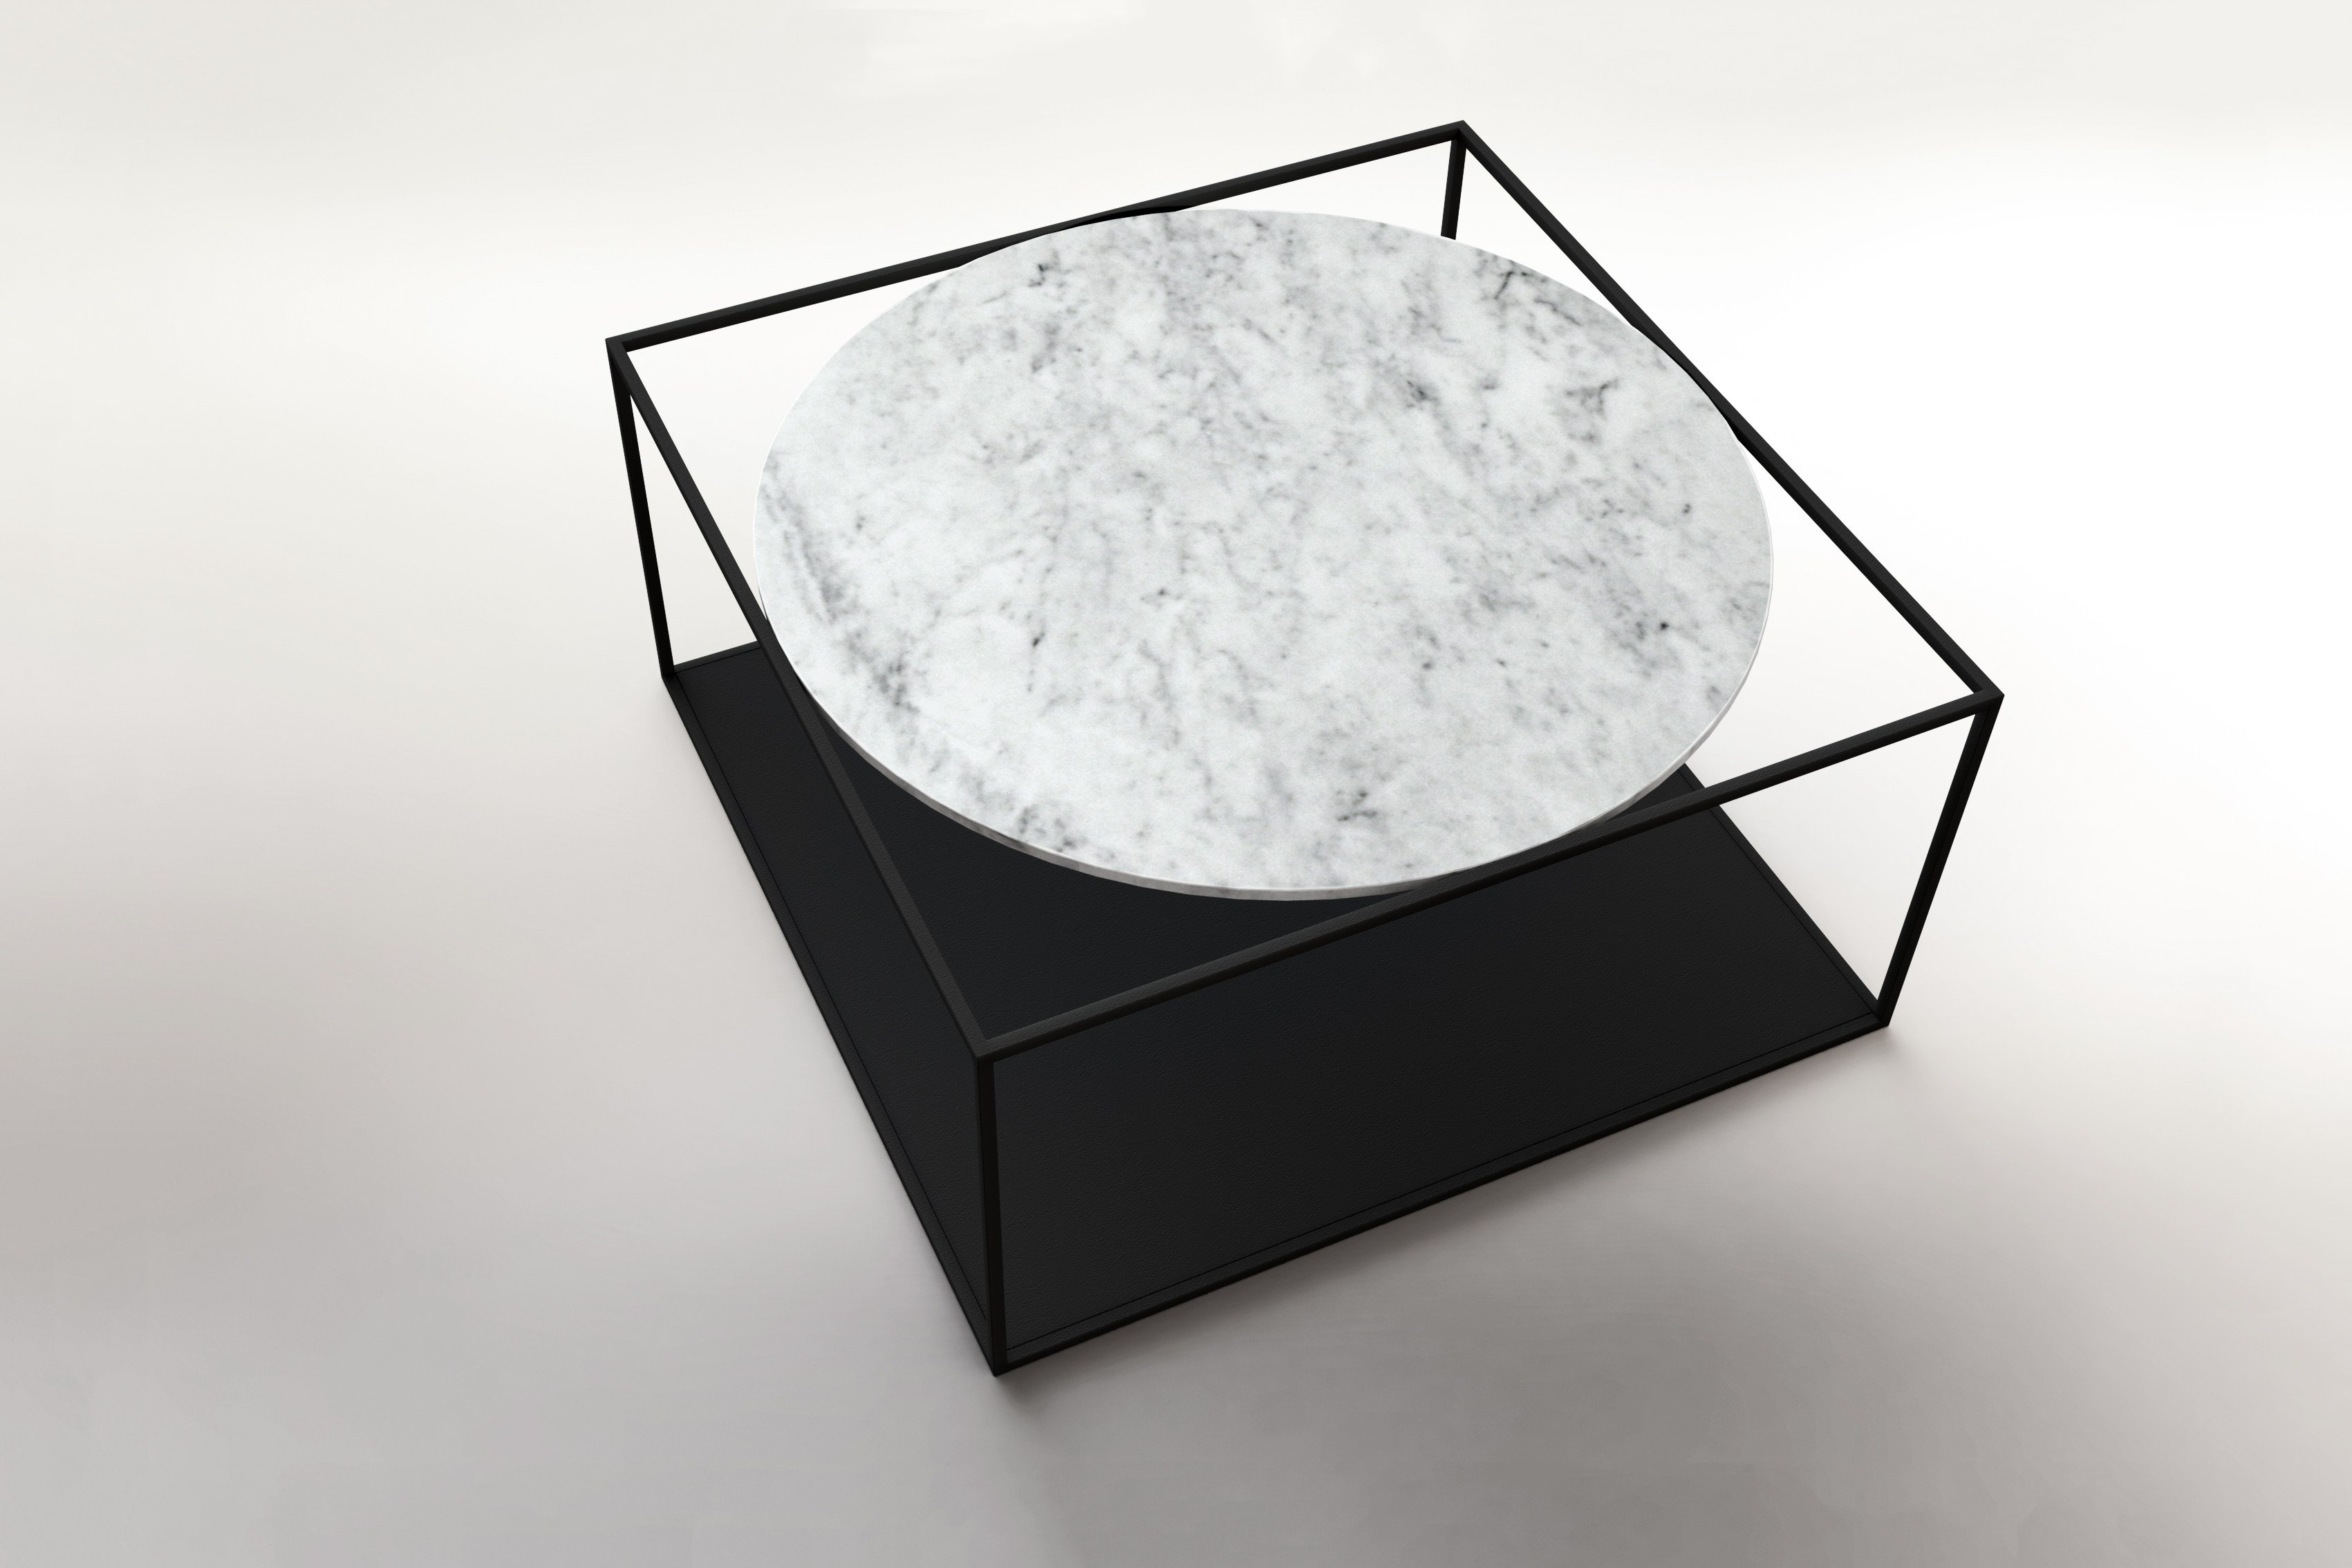 G3 marble coffee table by roche bobois design johan lindst n for Table basse marbre